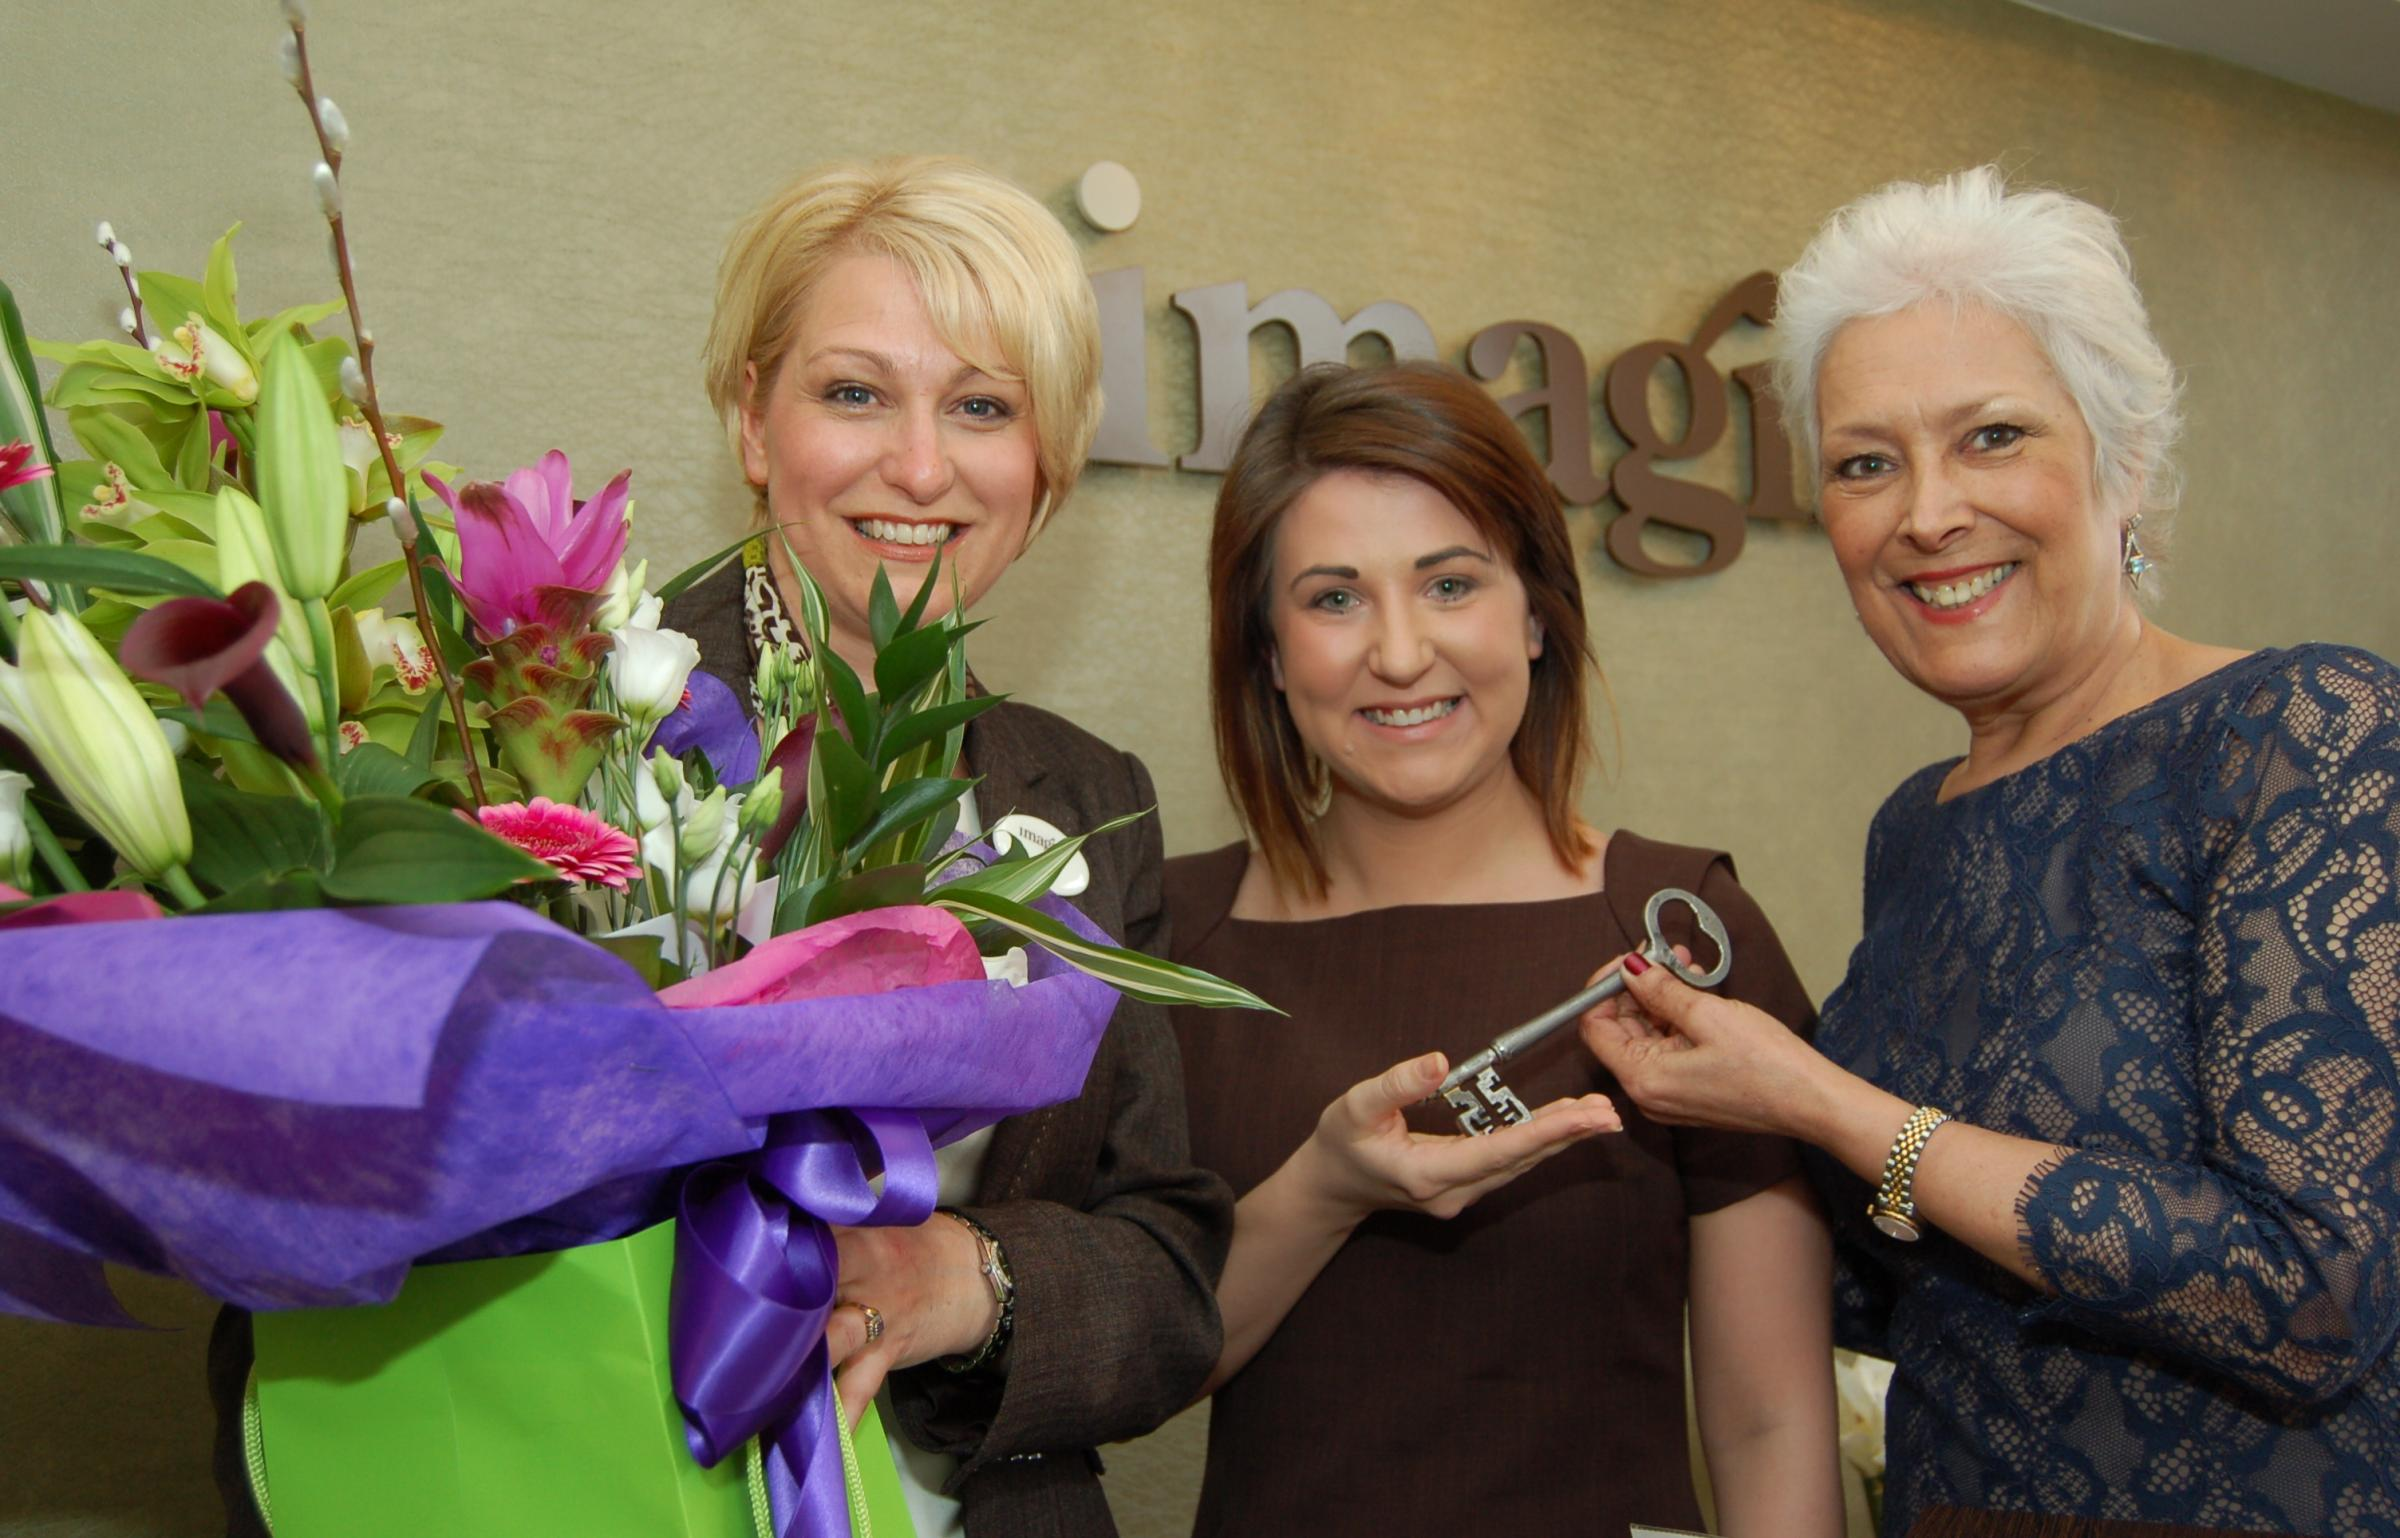 Lynda Bellingham OBE hands over the key to the door at the official opening of the new Imagine Spa to Spa Manager Lauren Cusworth and Wendy Butcher, left. Picture: Wendy Binns